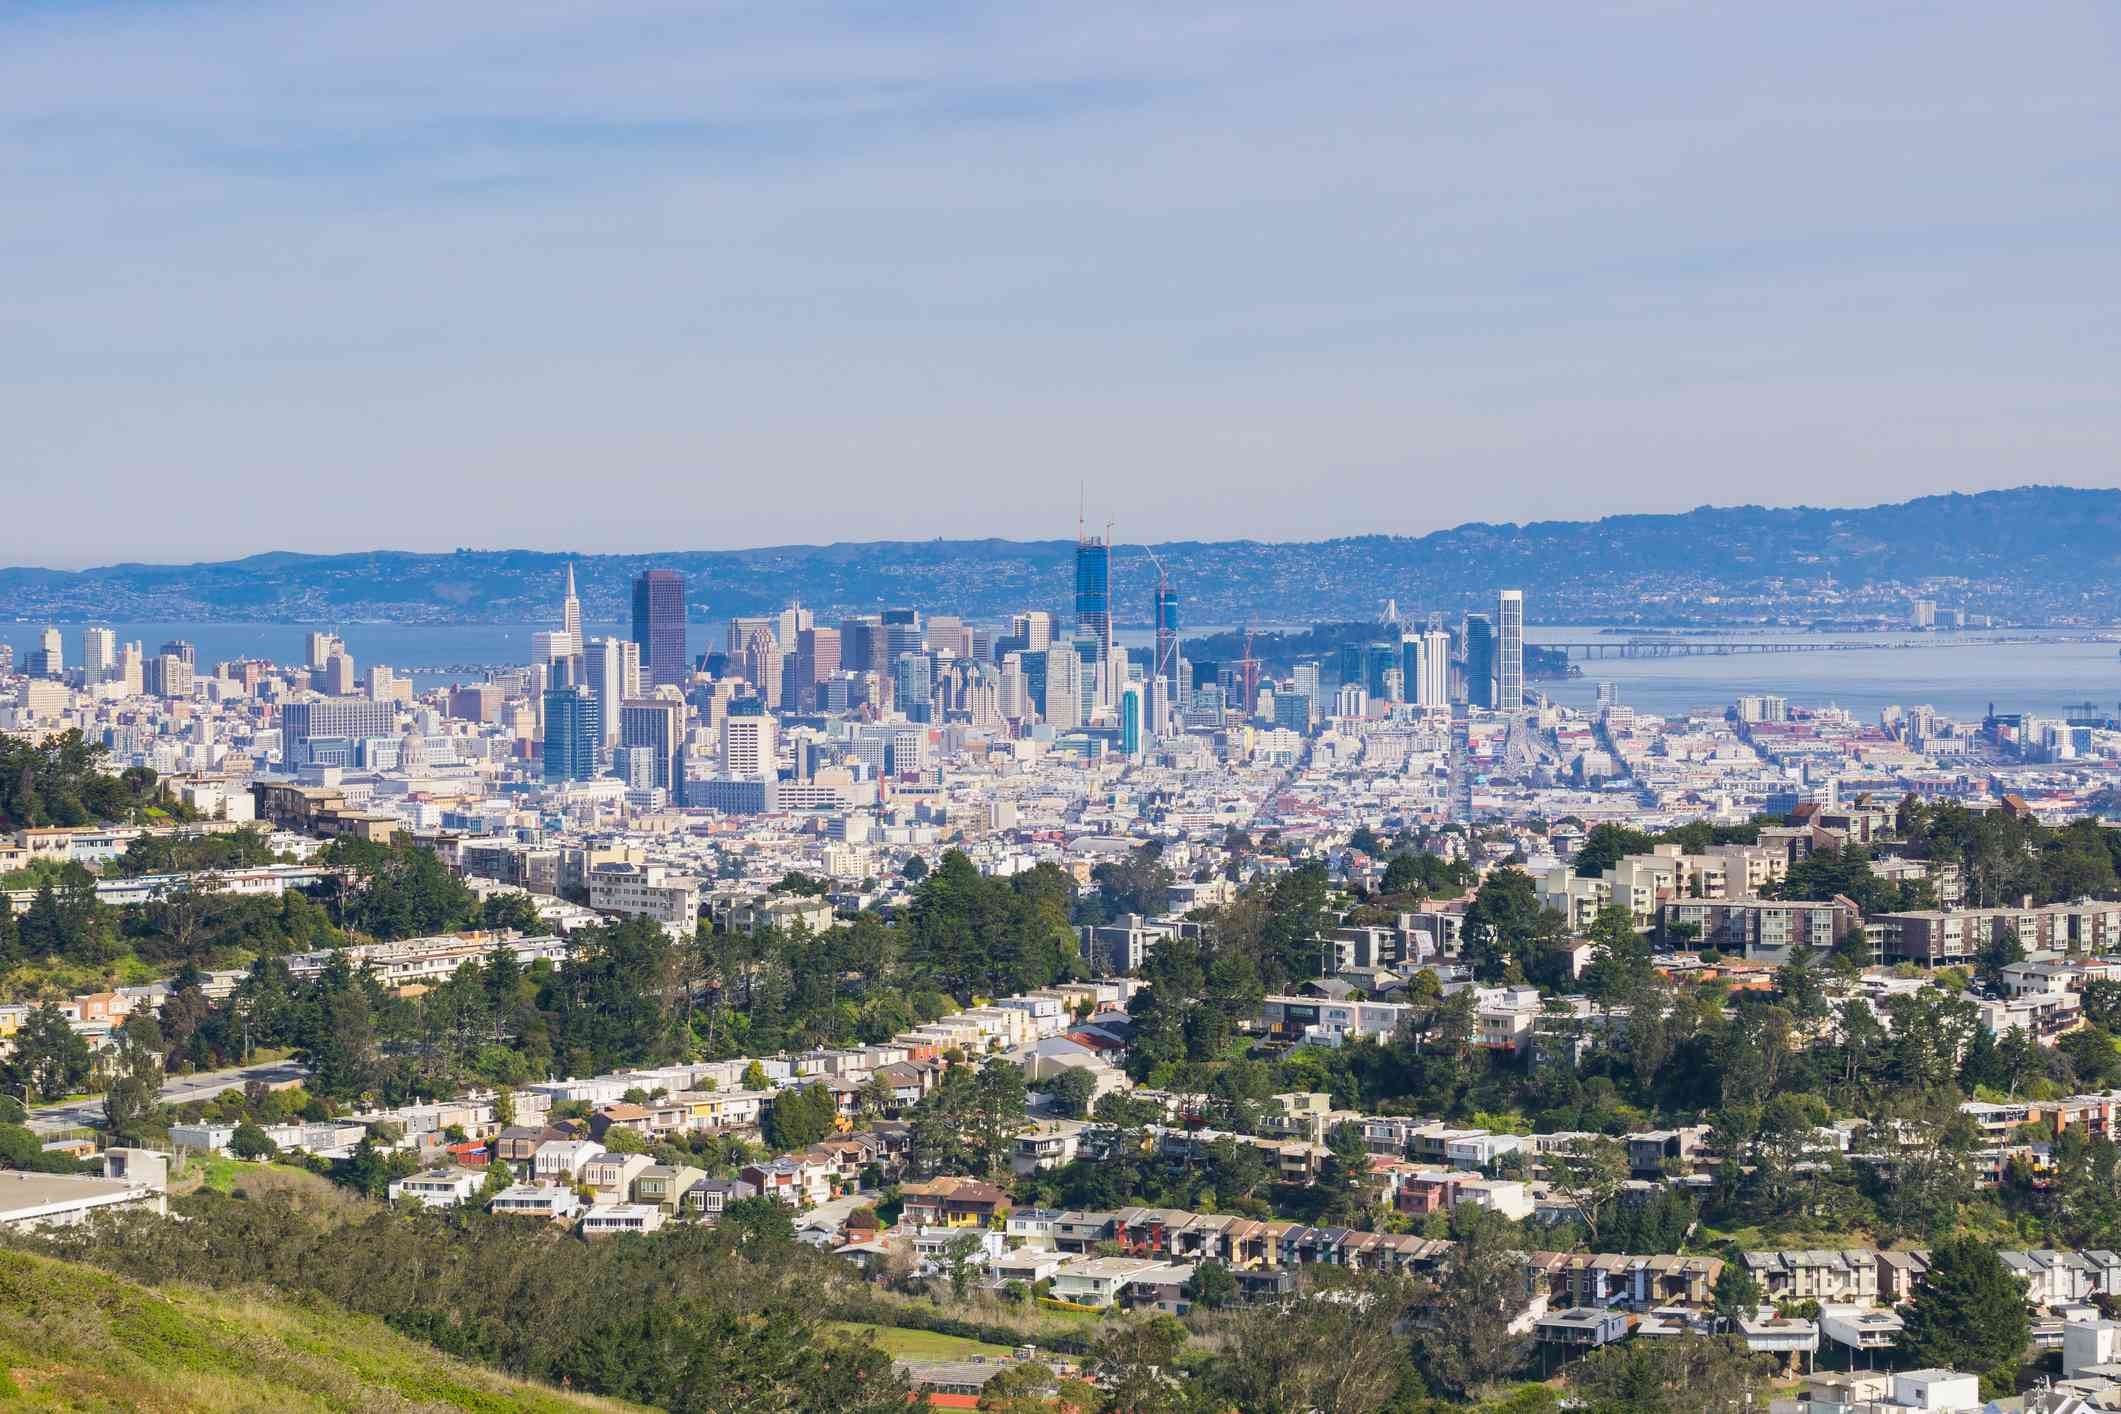 View of the city of San Francisco from Mt Davidson, with blue sky, and smaller mountains in the distance, the tall buildings of the city center and smaller buildings in the foreground located among tall green trees